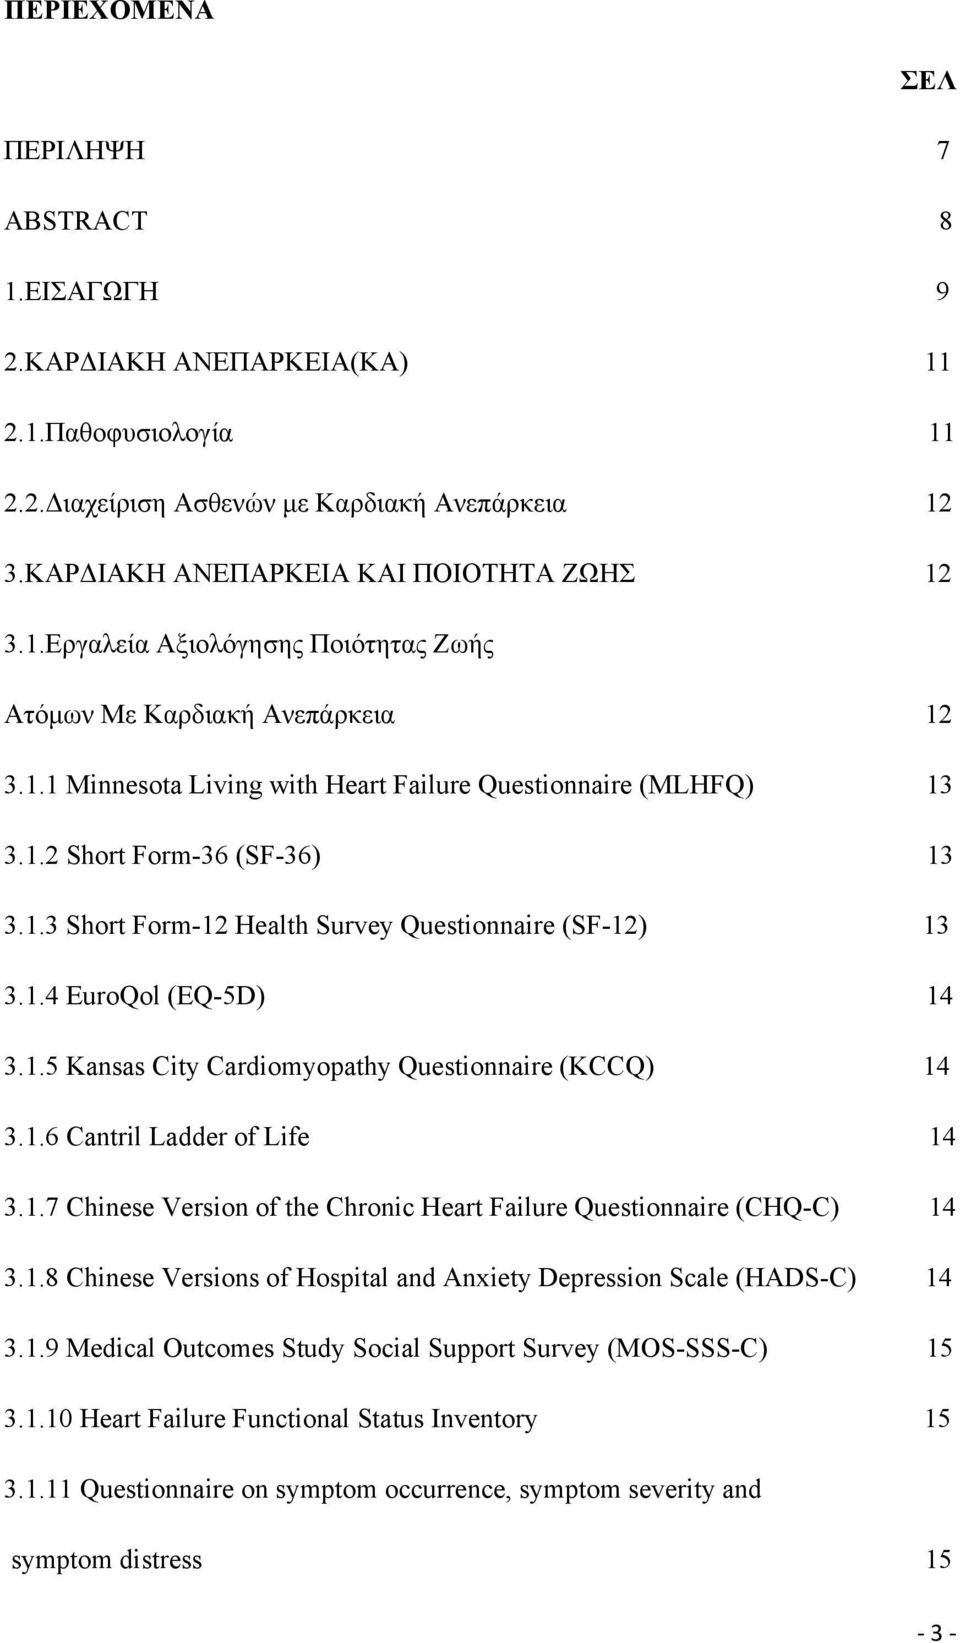 1.6 Cantril Ladder of Life 14 3.1.7 Chinese Version of the Chronic Heart Failure Questionnaire (CHQ-C) 14 3.1.8 Chinese Versions of Hospital and Anxiety Depression Scale (HADS-C) 14 3.1.9 Medical Outcomes Study Social Support Survey (MOS-SSS-C) 15 3.